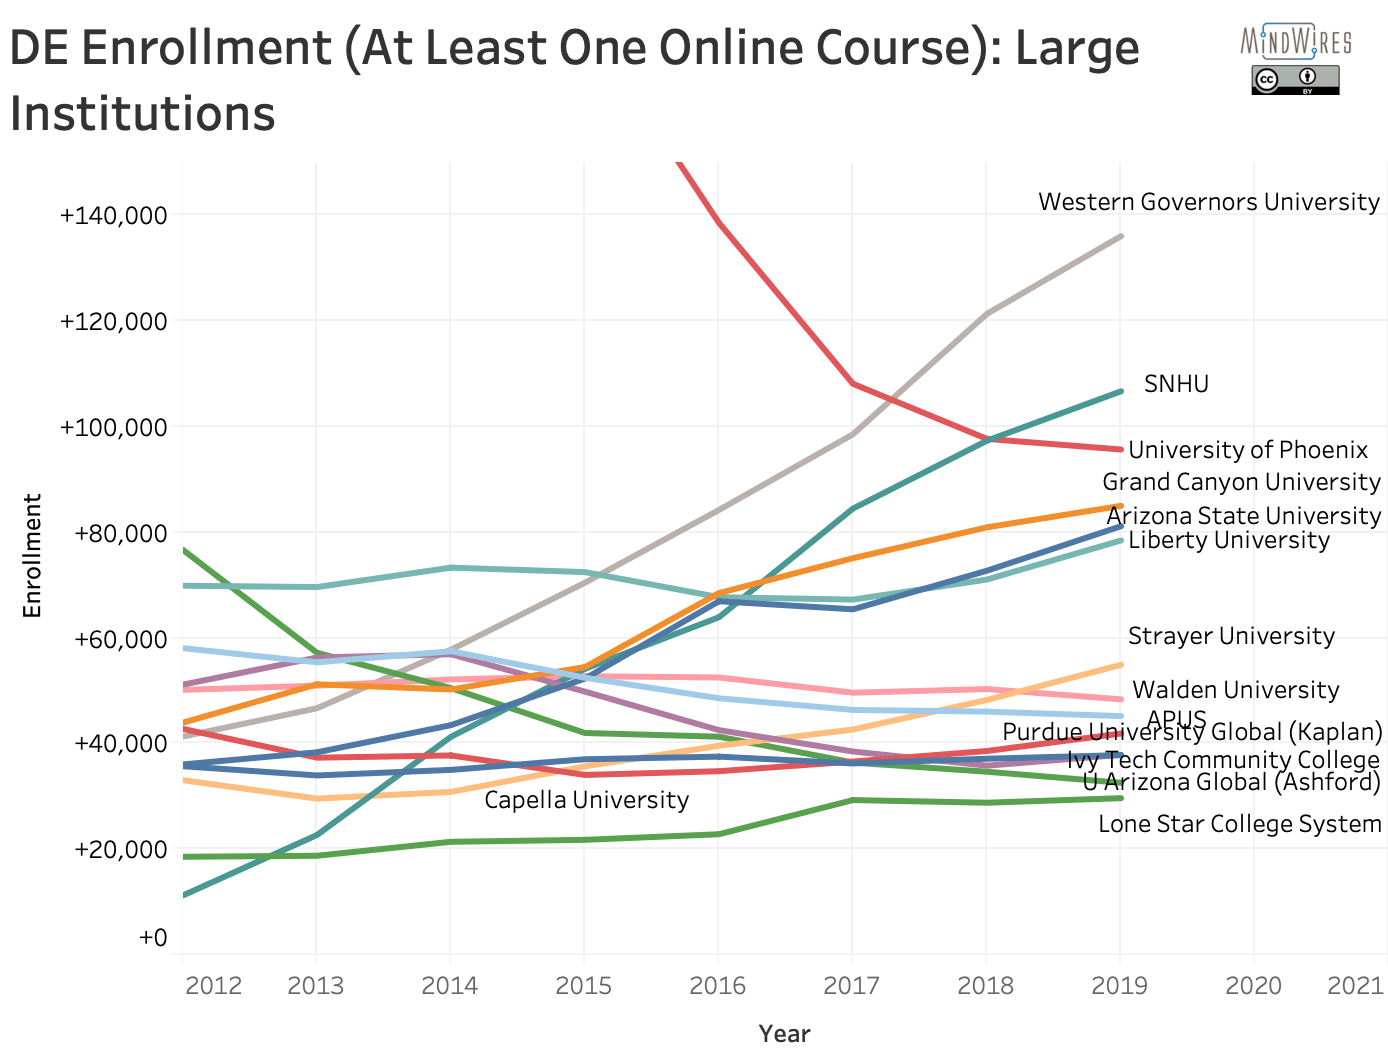 Top institutions by enrollment of students taking at least one online course over time, 2012 - 2019